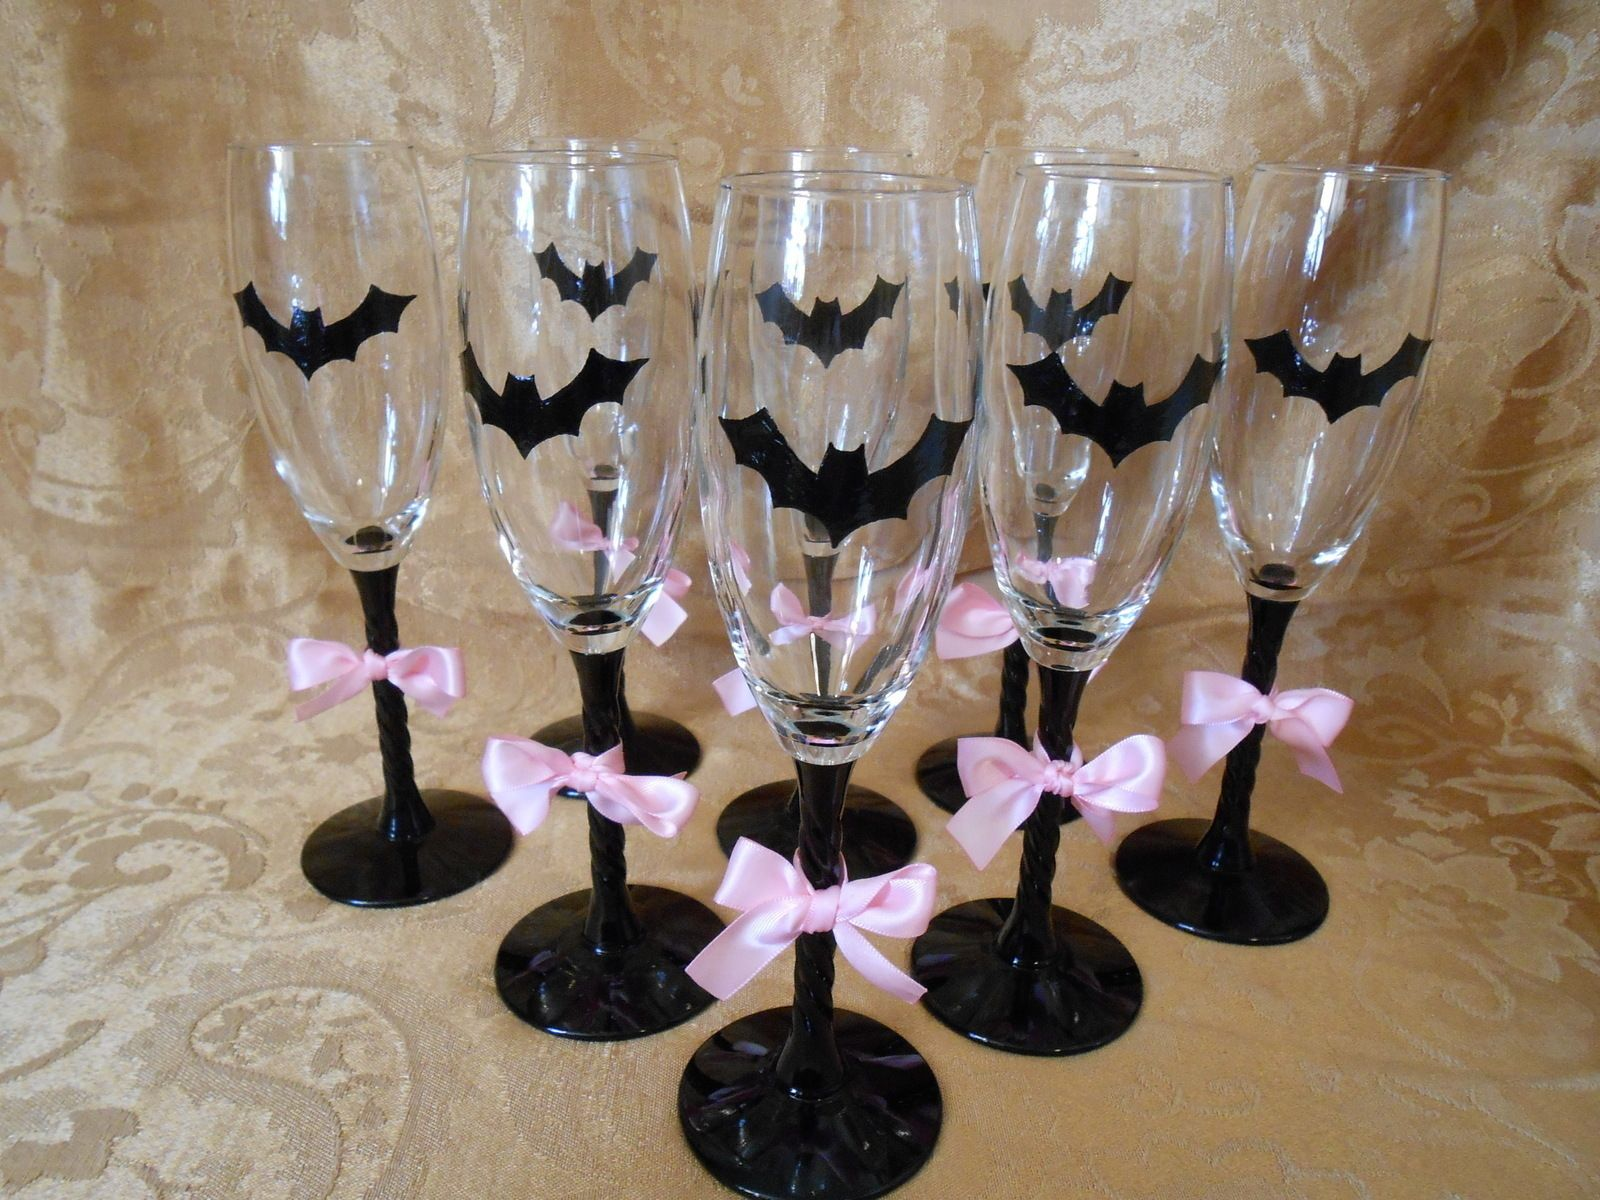 Bats N Bows Wine Glasses | Halloween weddings, Bats and Girly